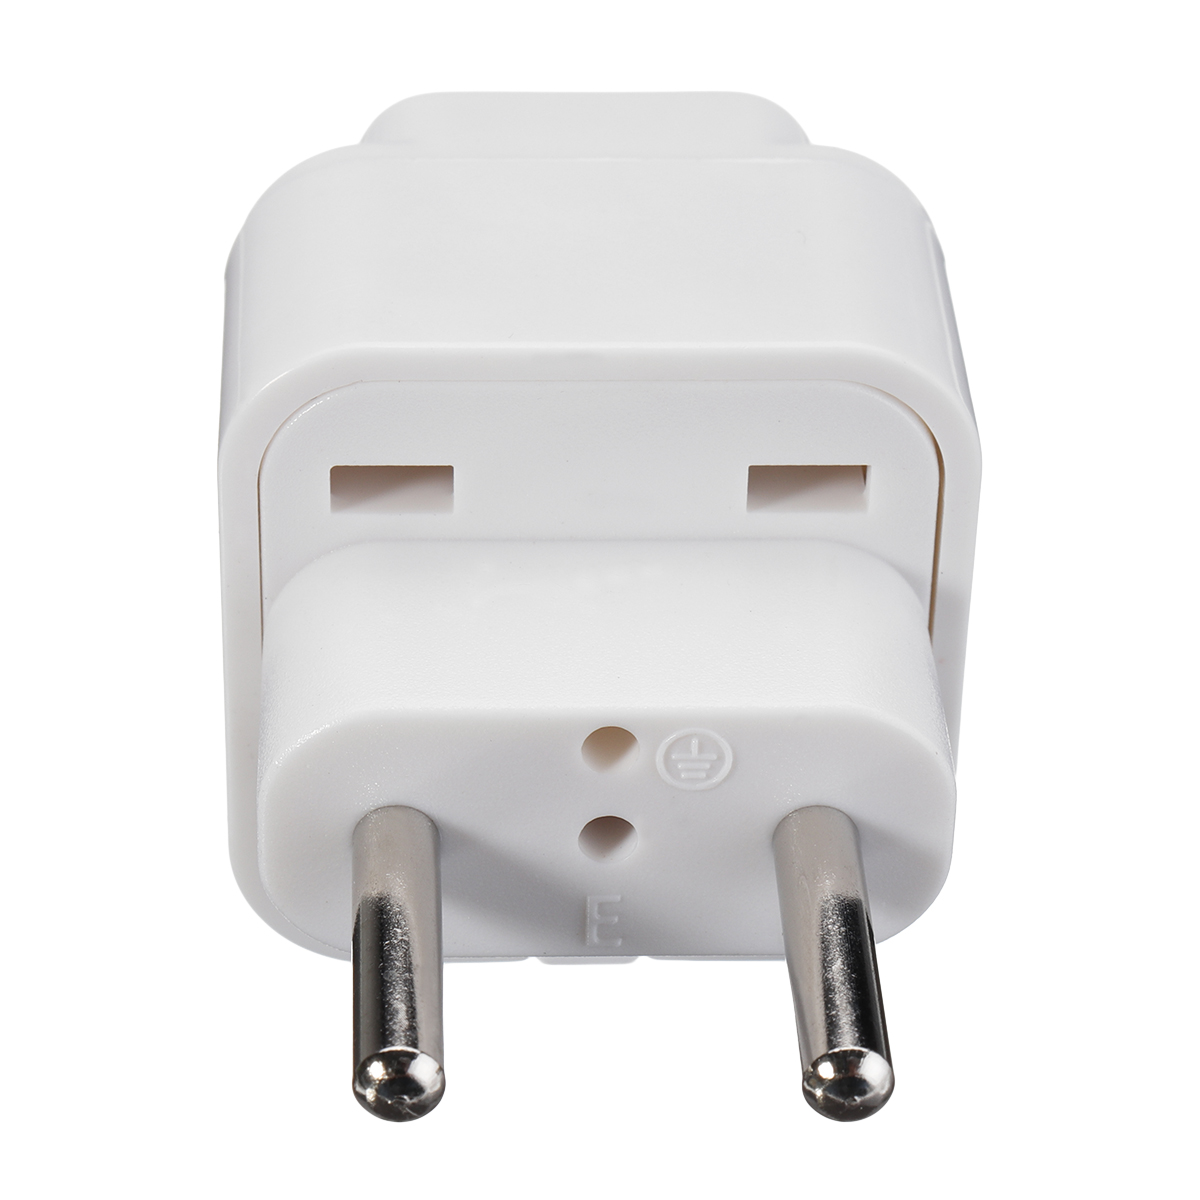 Multi-Plug Power Travel Adapter Power Adapter Universal Plug Adapter for Europe